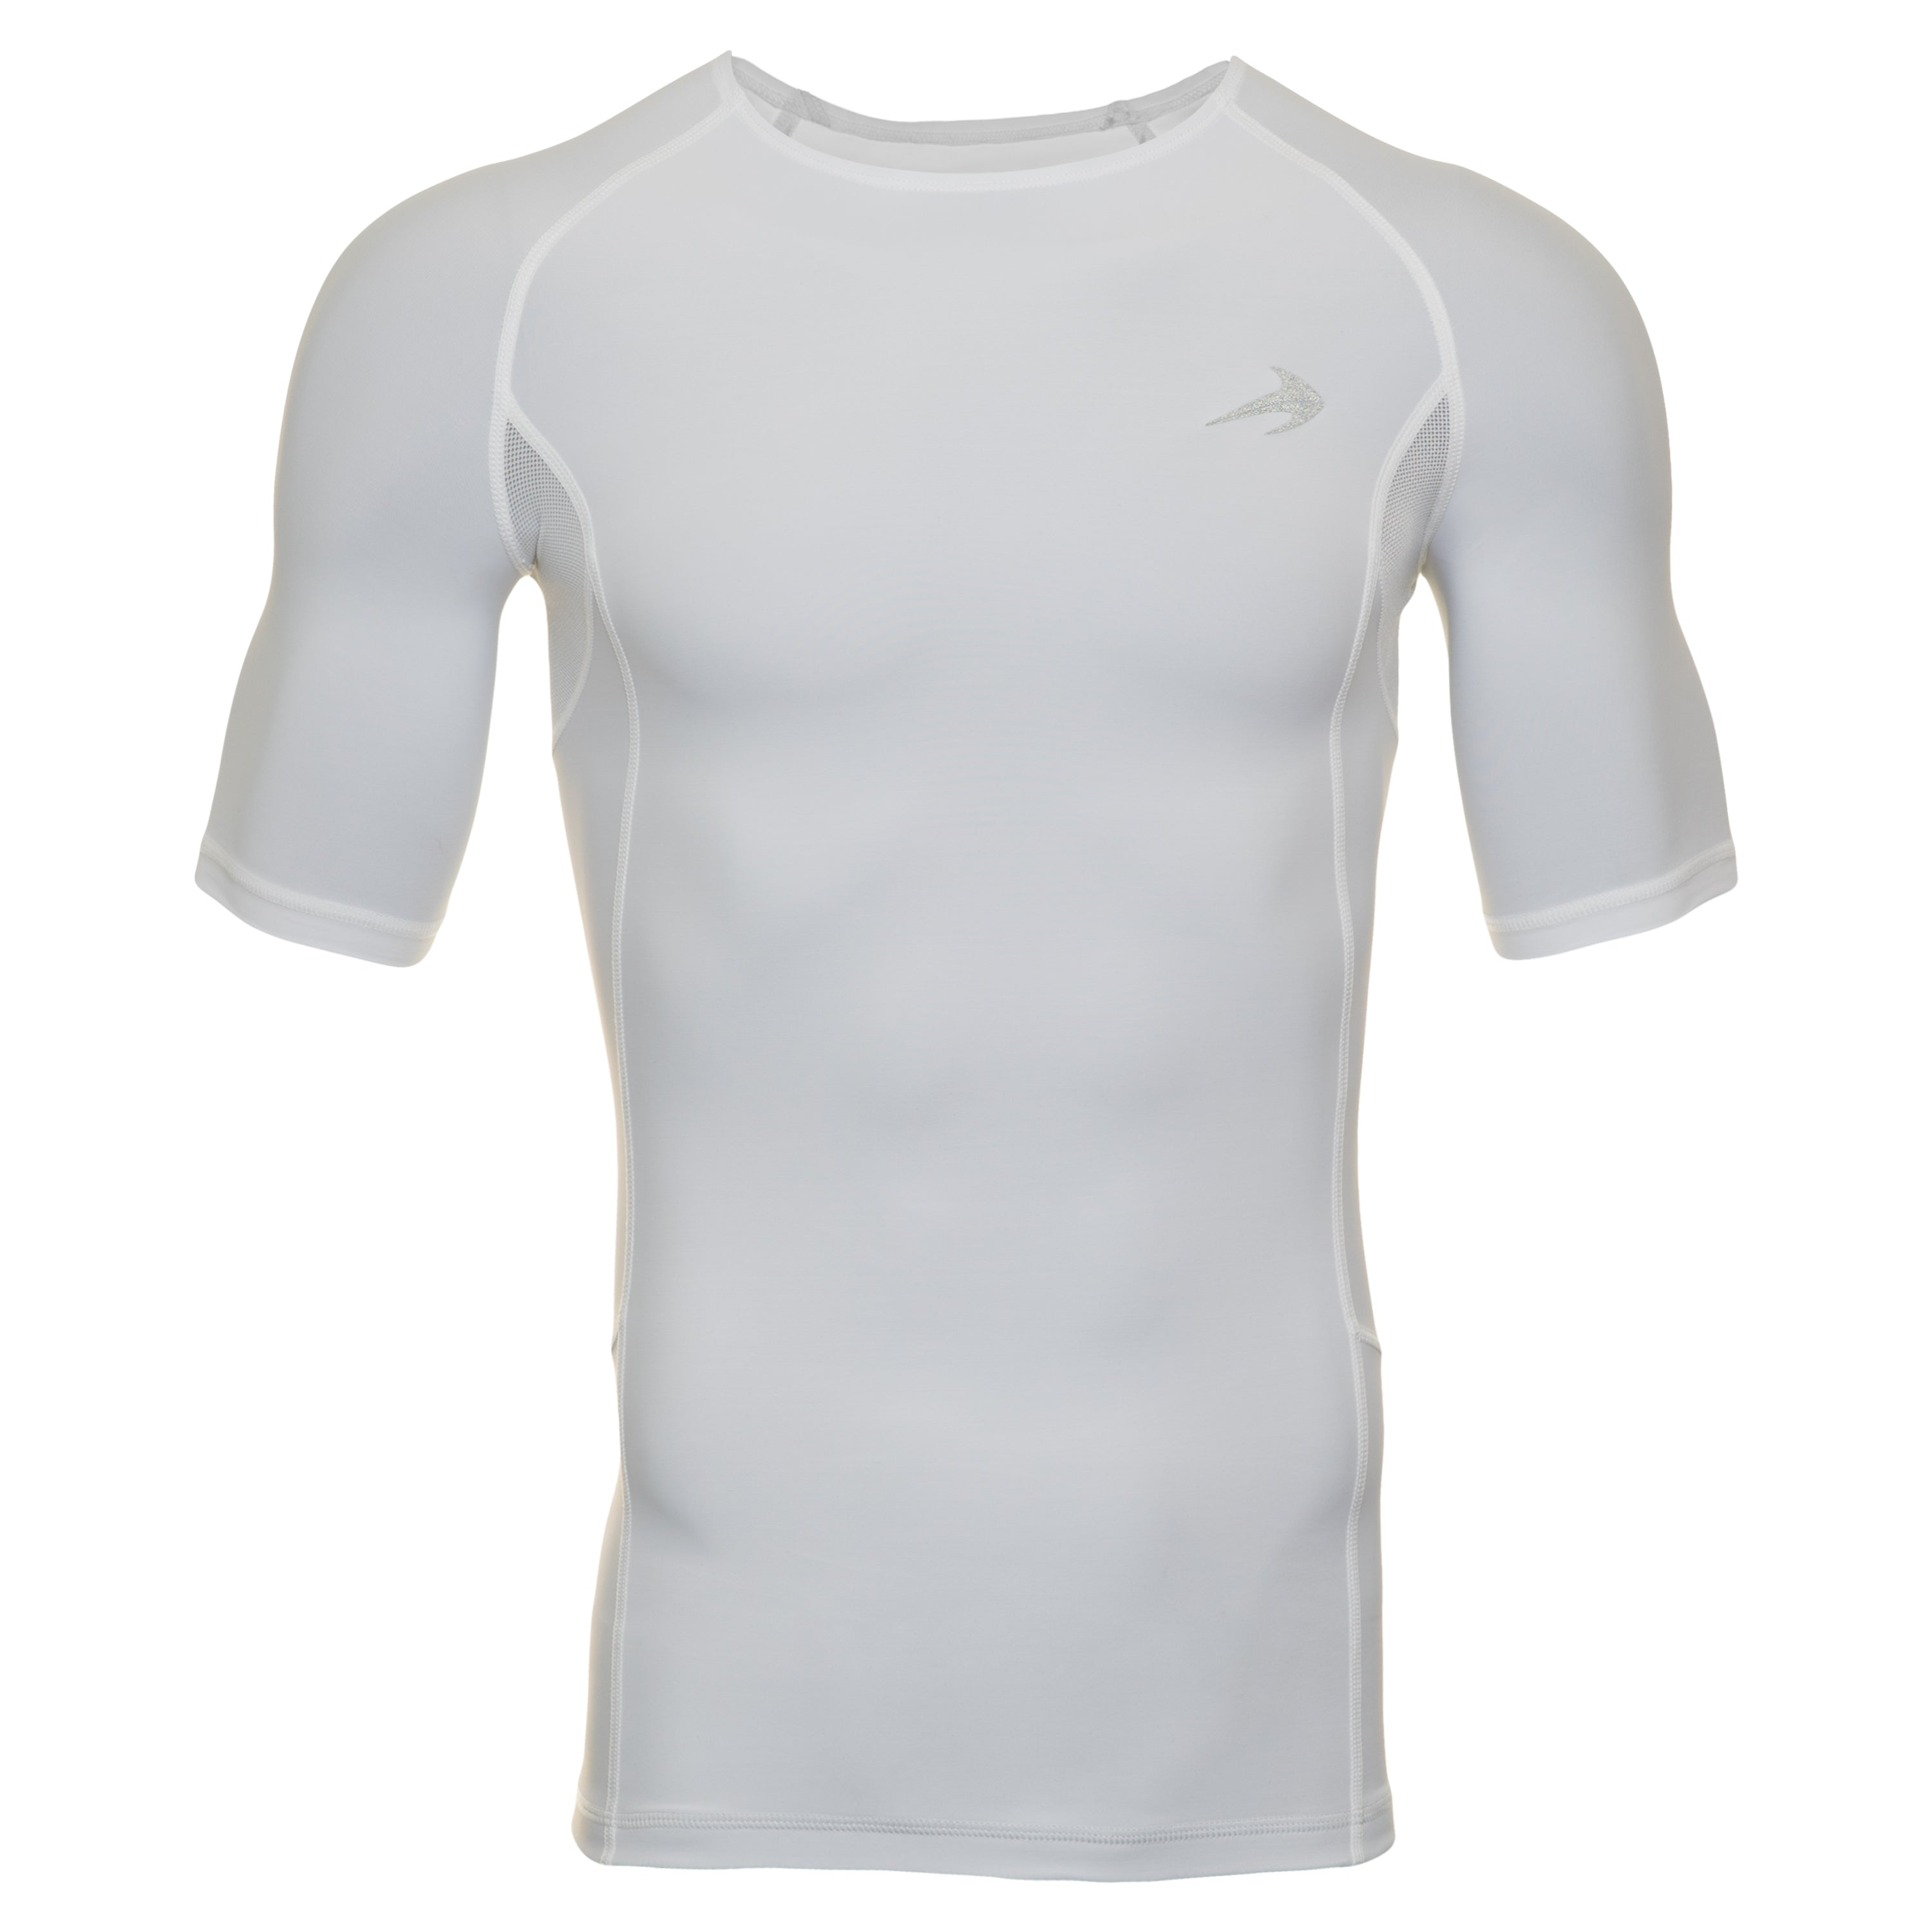 Men's Compression Short Sleeve Shirt - White